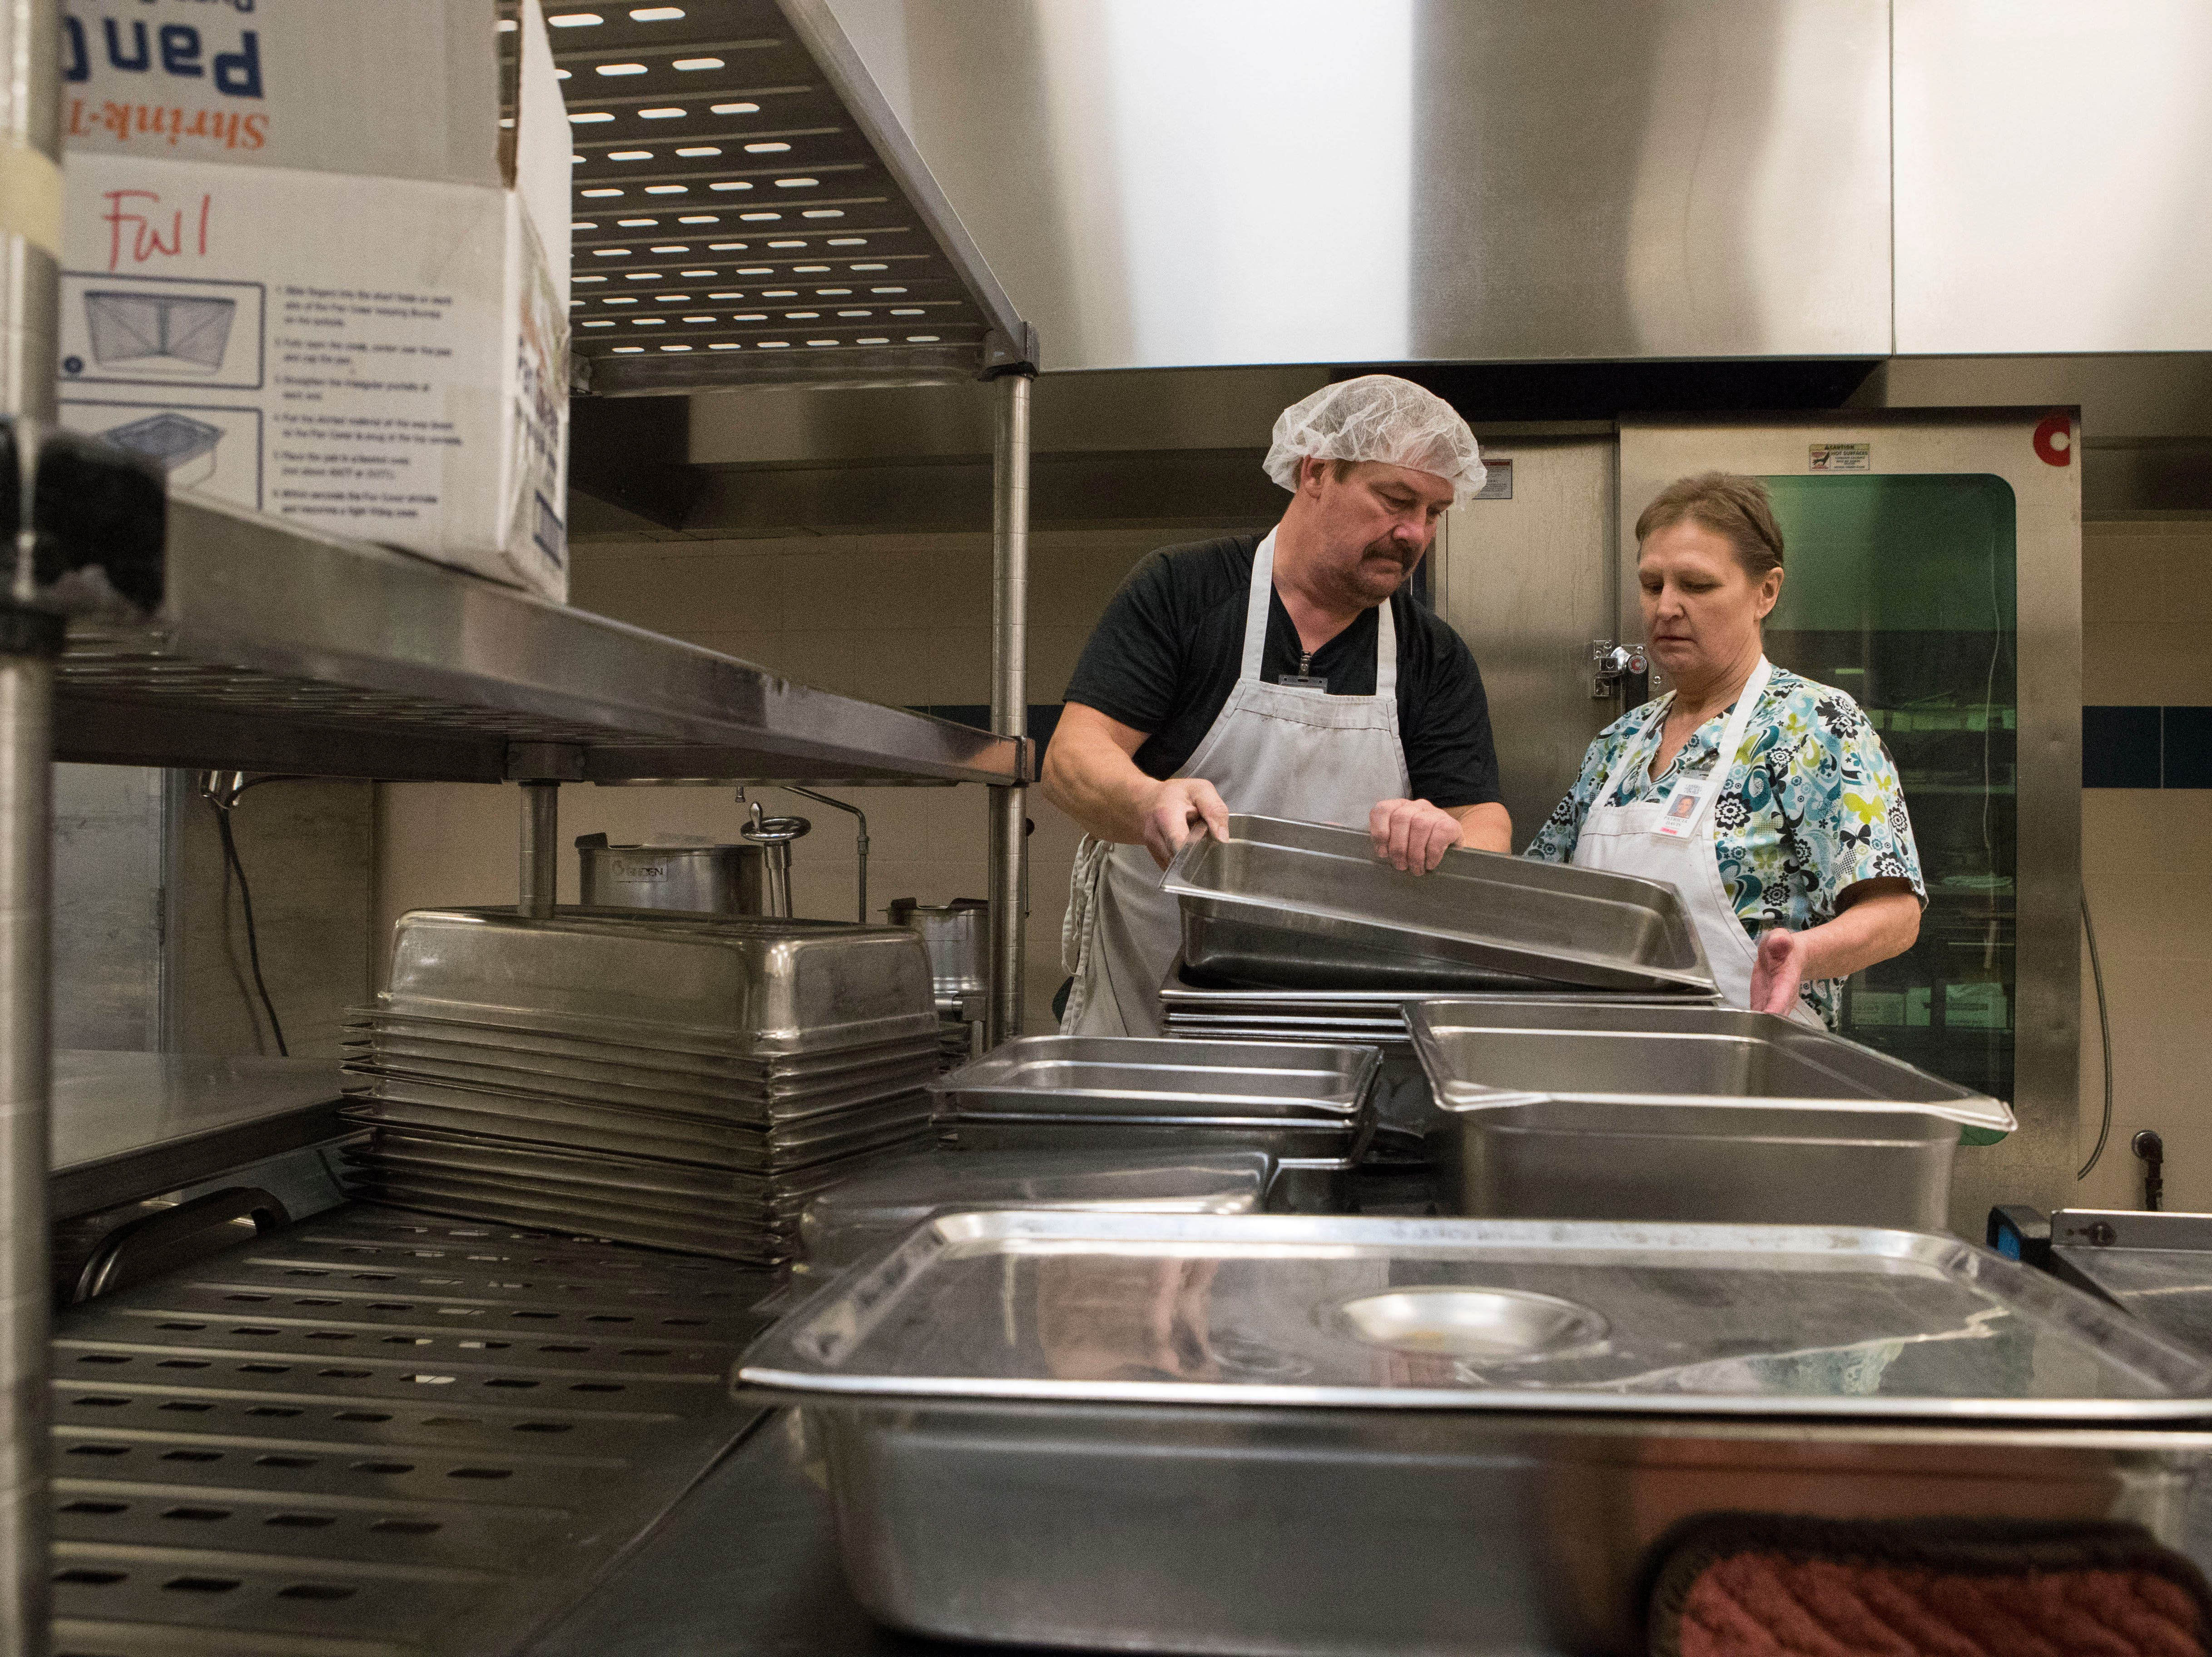 Bob Baade and Patty Davis prepare meals for the public schools in Sioux Falls, S.D. at Child Nutrition Service, Tuesday, Jan. 8, 2019.